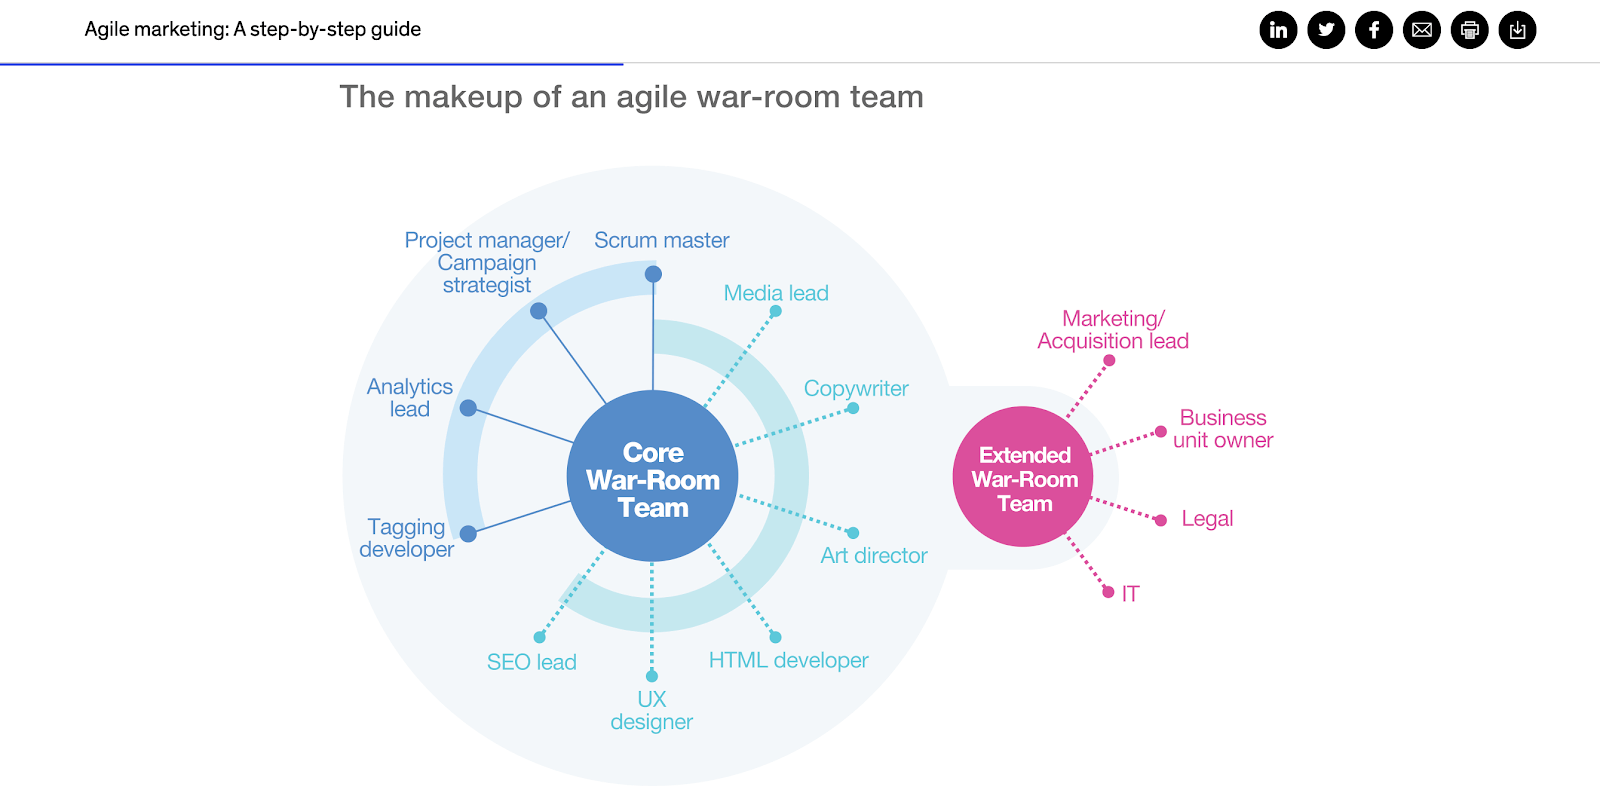 McKinsey Agile Marketing step-by-step guide